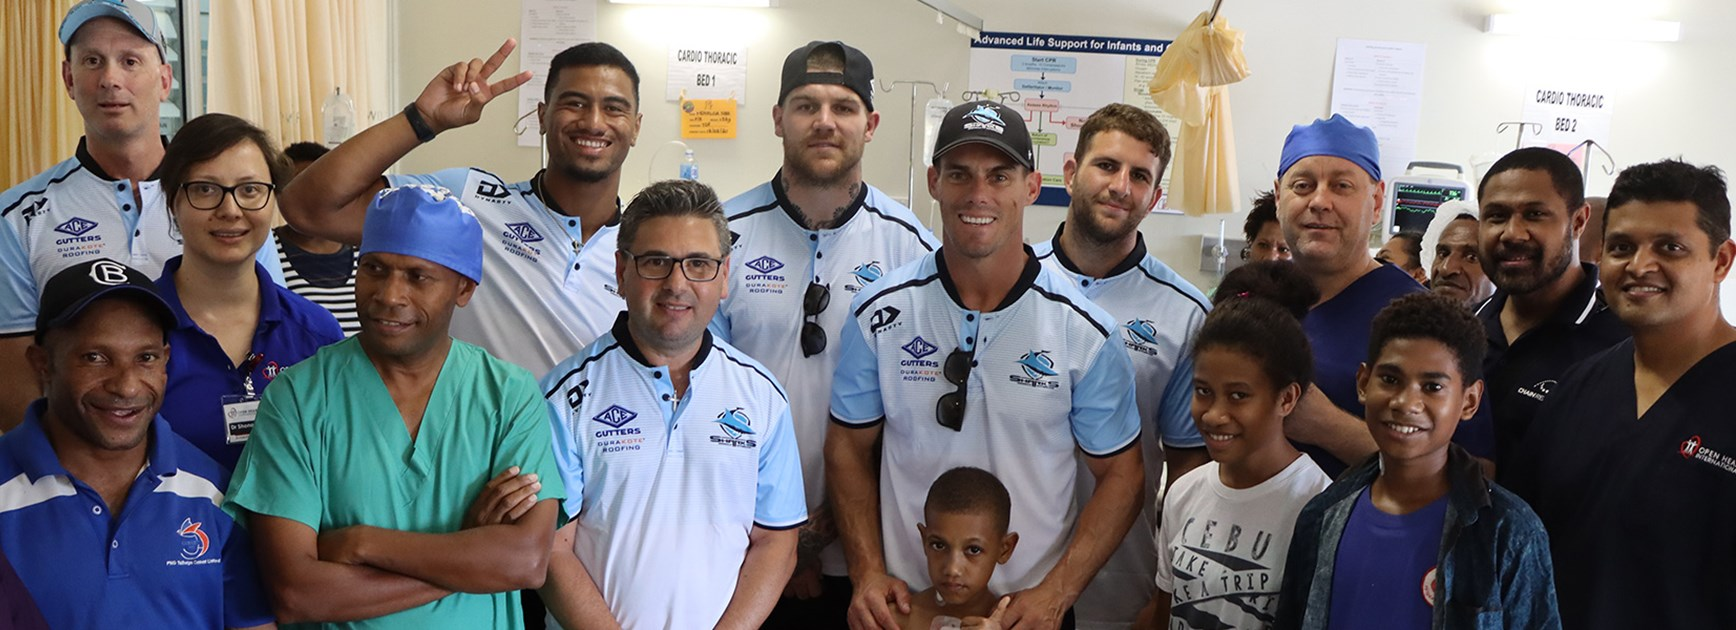 Morris talks to Hadley about 'life-changing' PNG hospital visit